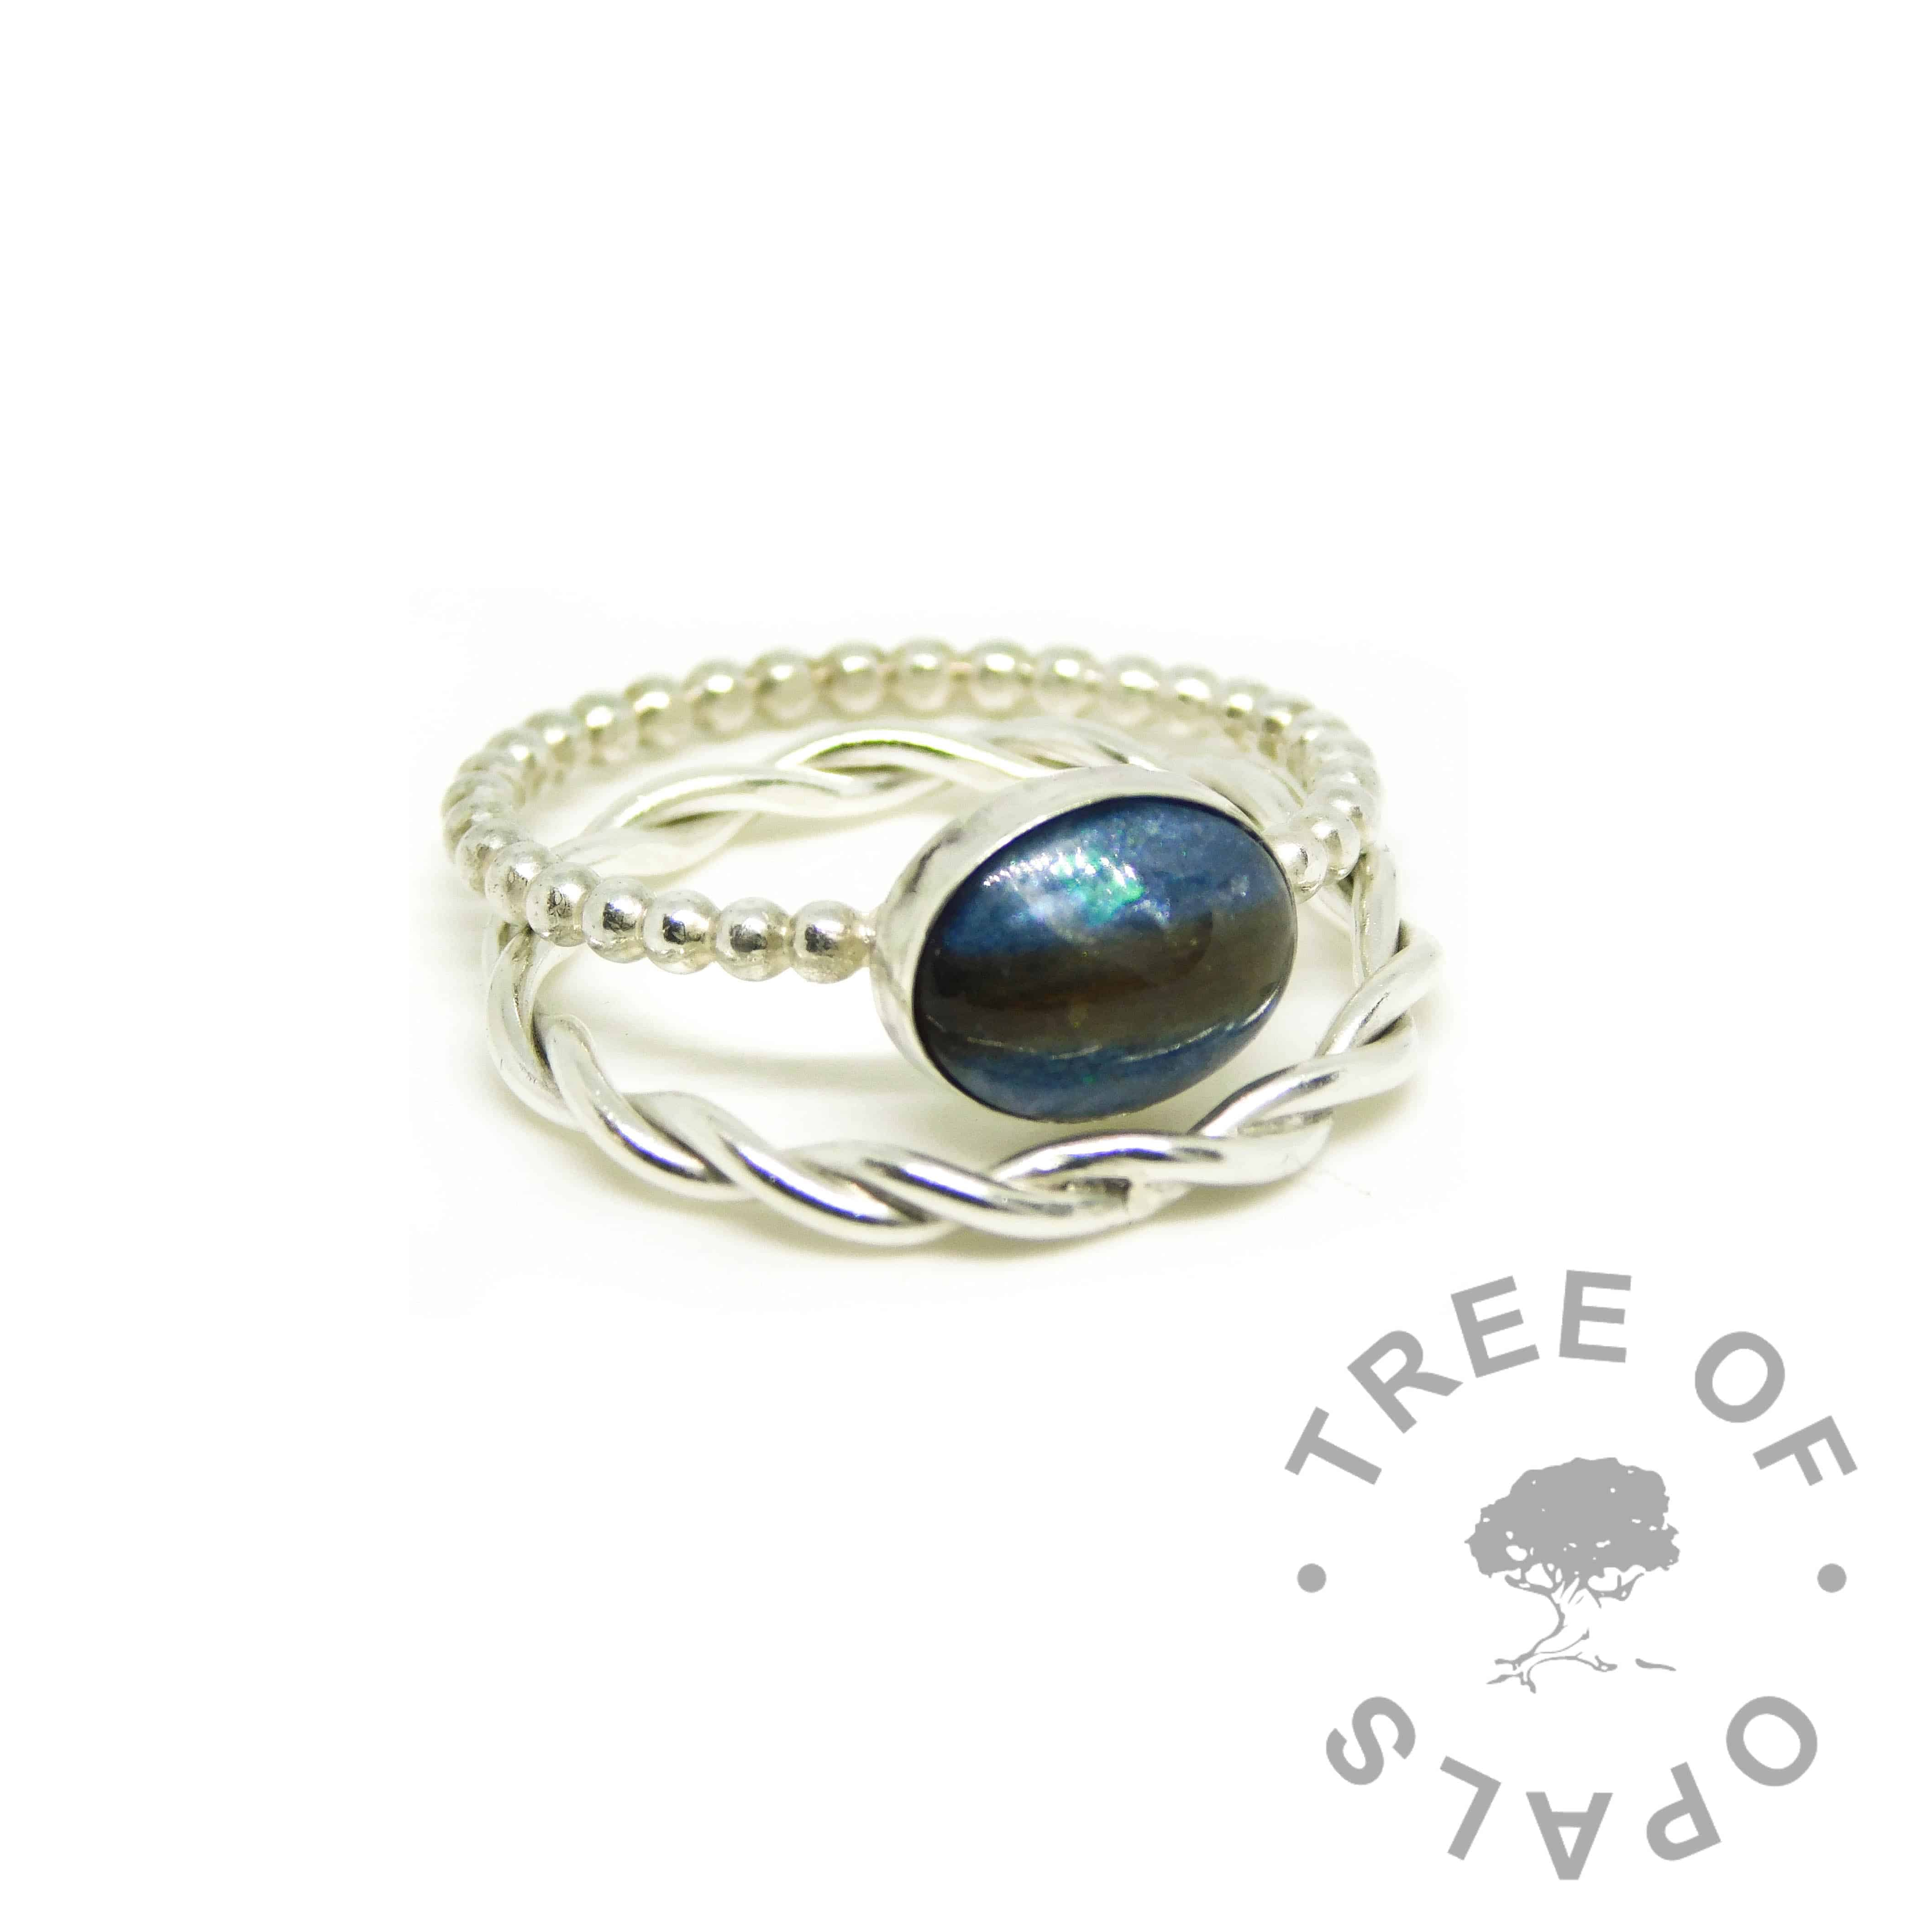 blue hair ring, Aegean blue resin sparkle mix, bubble wire Argentium silver band. Shown with a twisted band slim stacking ring